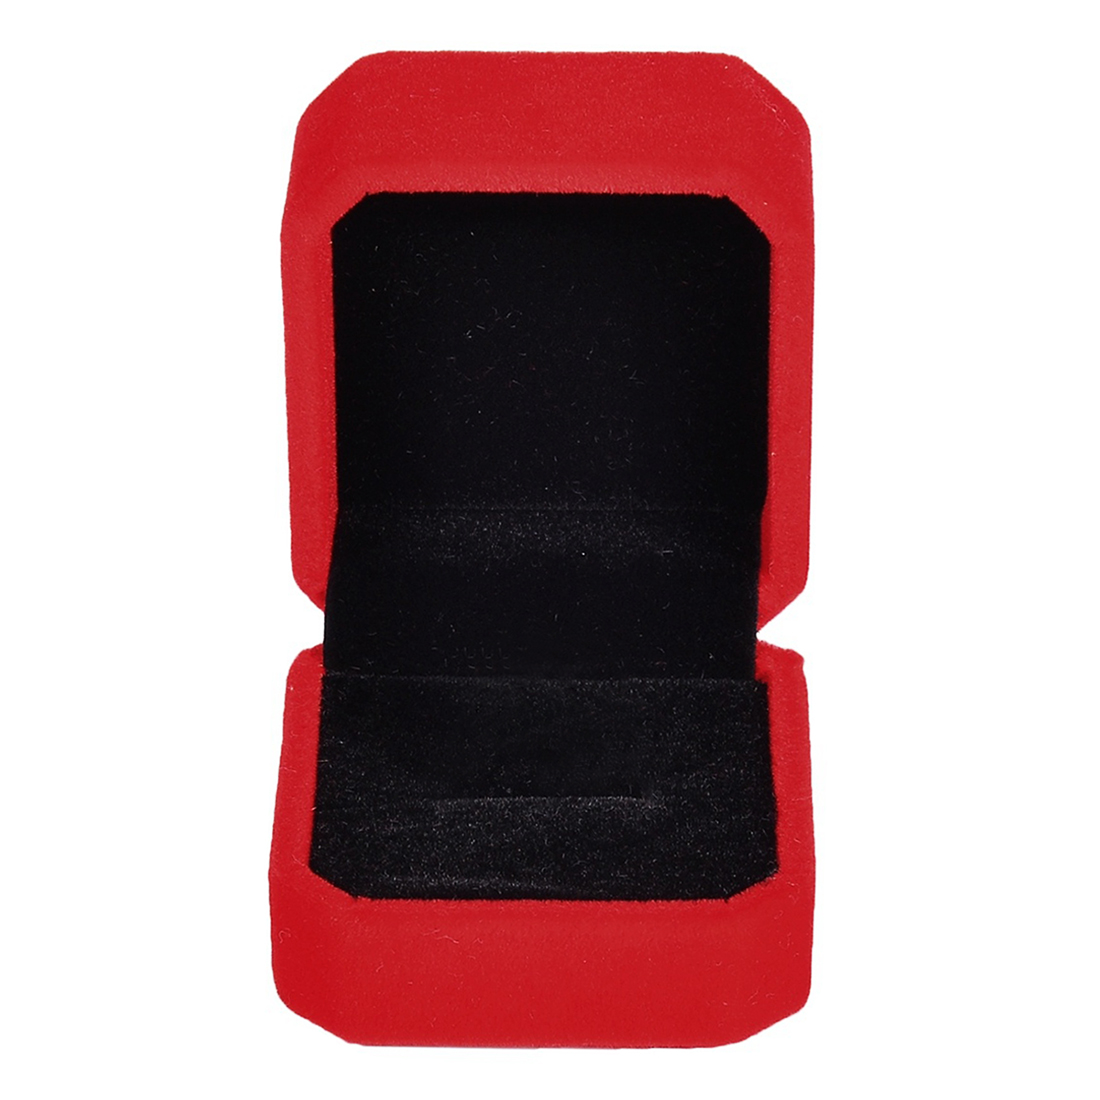 Rings Display Box Storage Soft Velvet Tray Case Holder Stand Display Storage Box Show Jewelry Organizers Ring Box Red